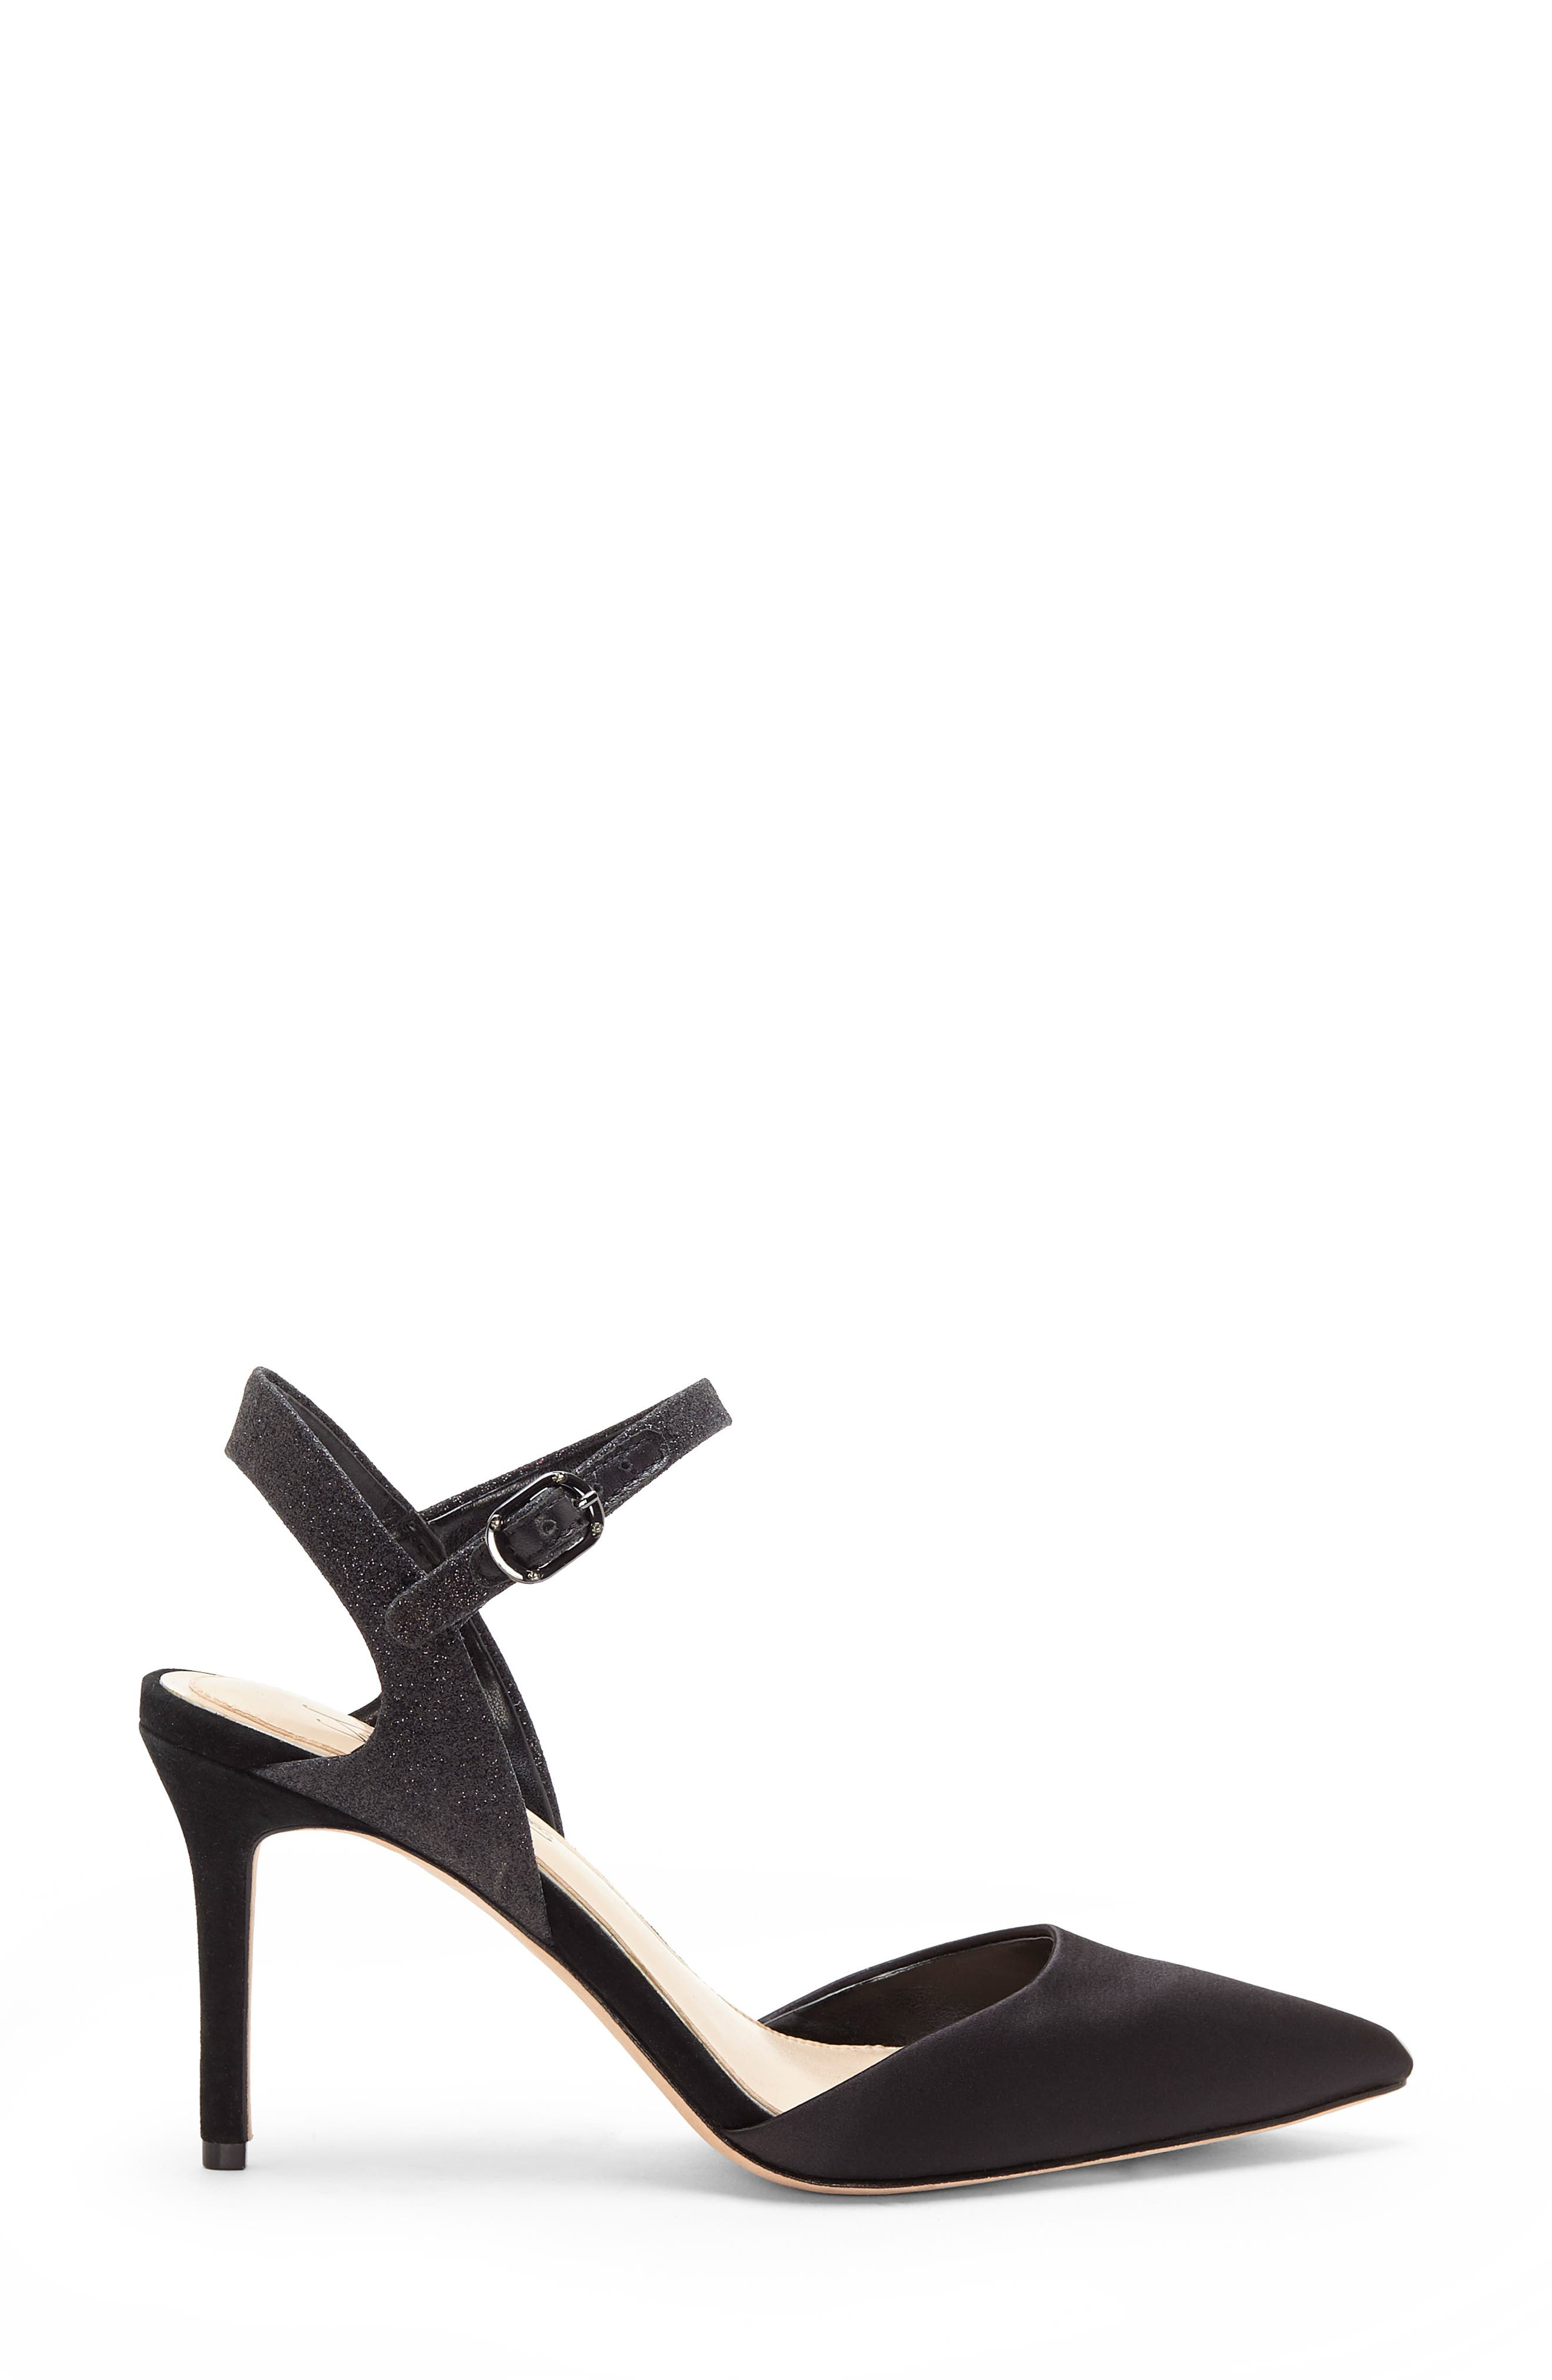 IMAGINE BY VINCE CAMUTO, Glora Pointy Toe Pump, Alternate thumbnail 3, color, BLACK SATIN